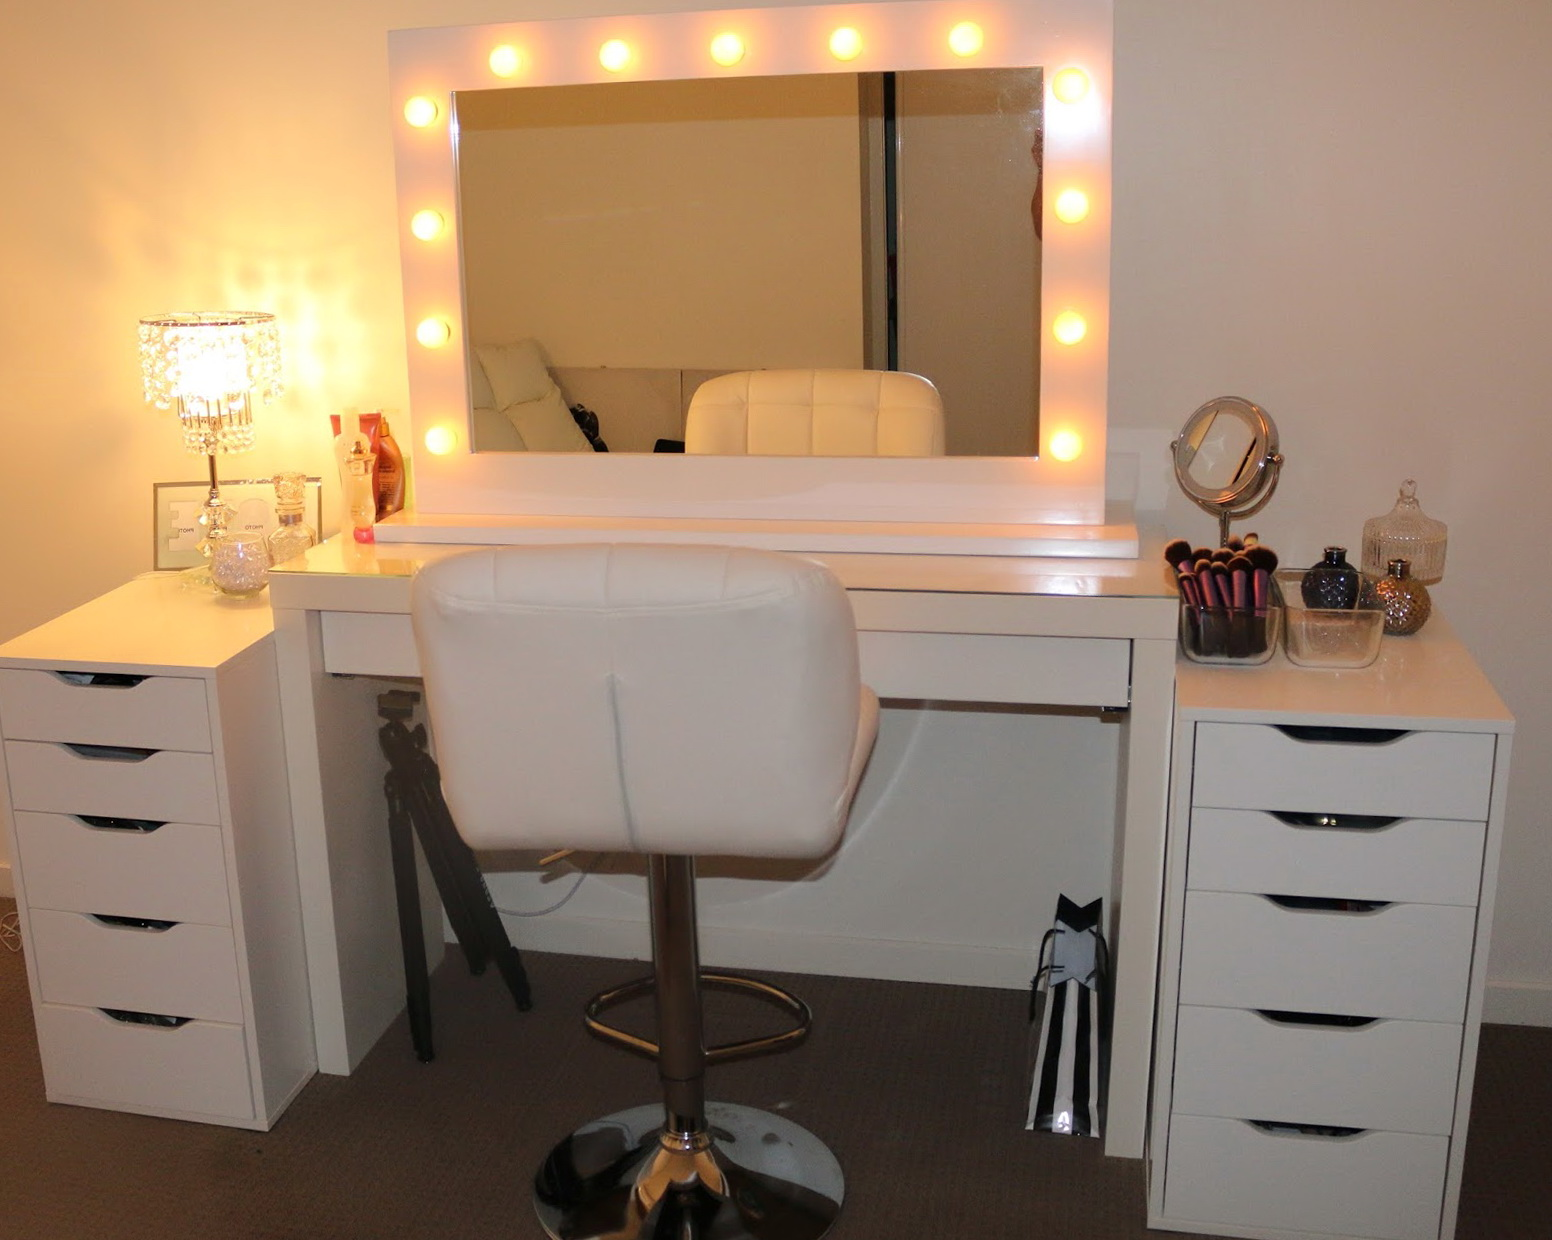 Hollywood Mirror Lights Ikea Hollywood Vanity Mirror With Lights Ikea Home Design Ideas